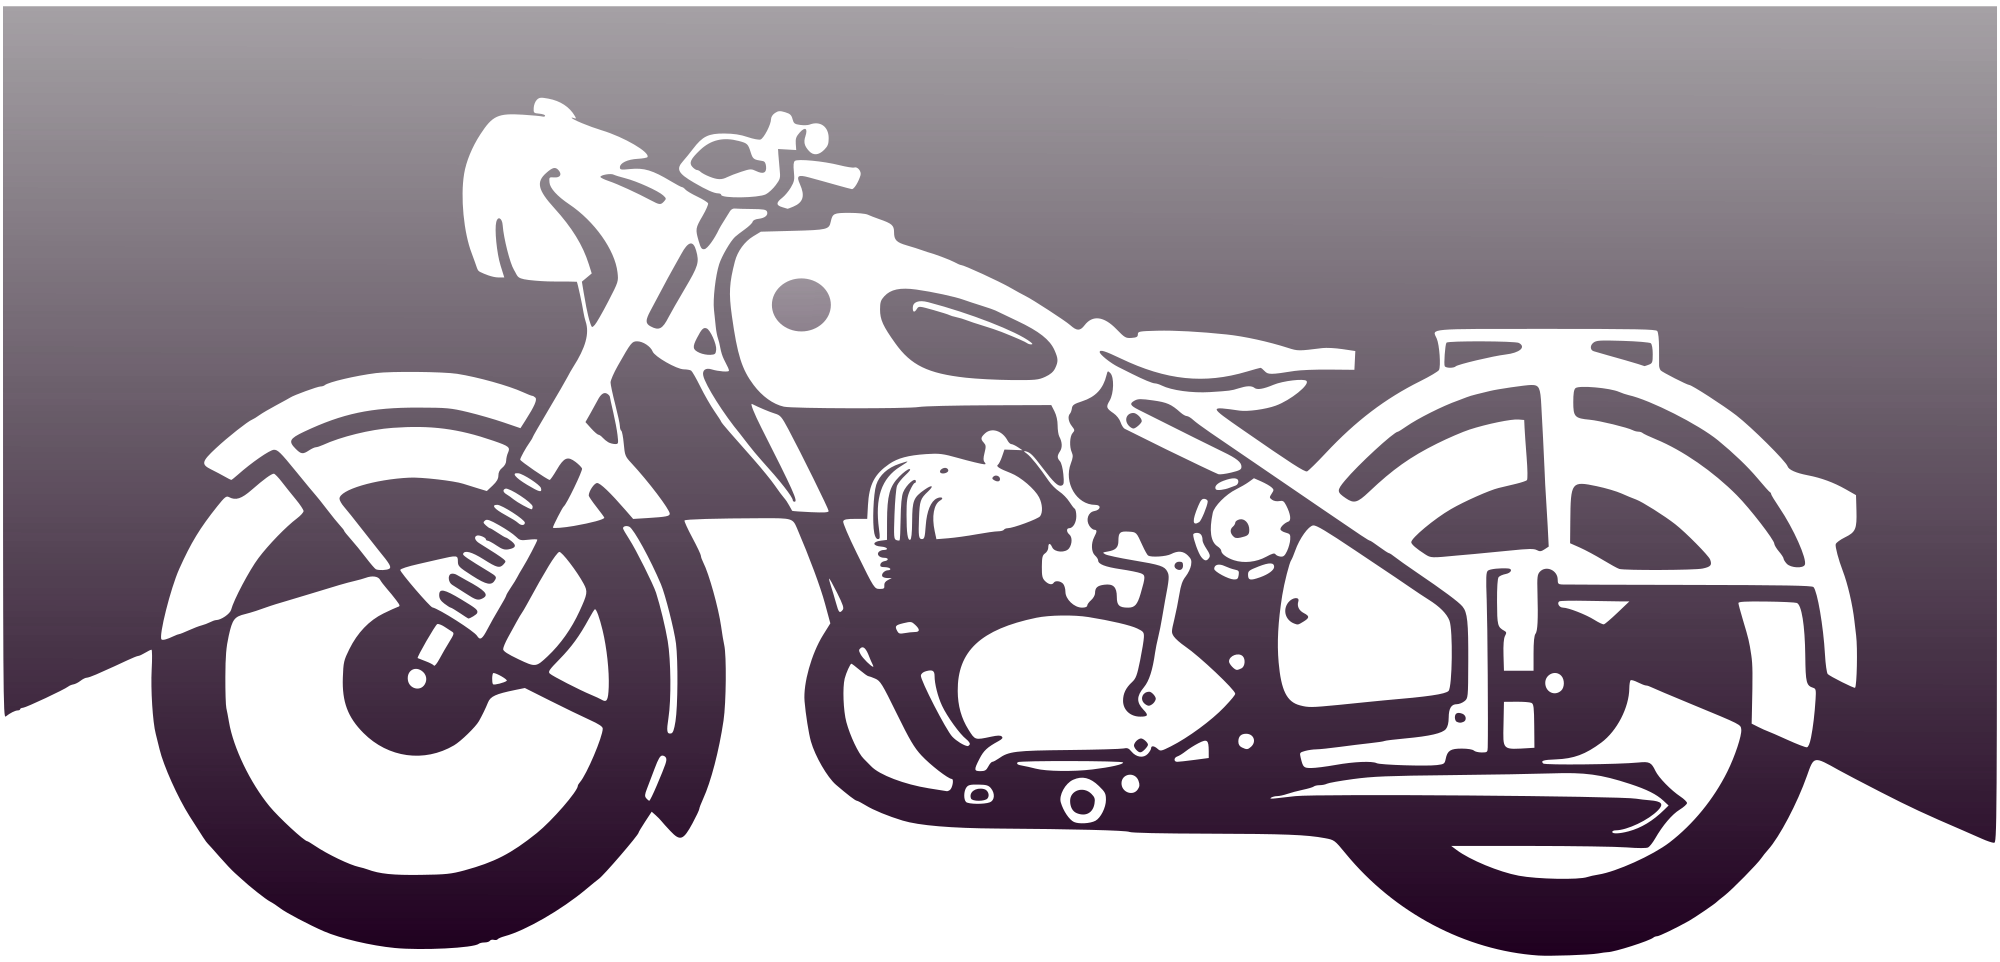 Motorbike Of The 1950Ies Clipart png free, Motorbike Of The 1950Ies transparent png